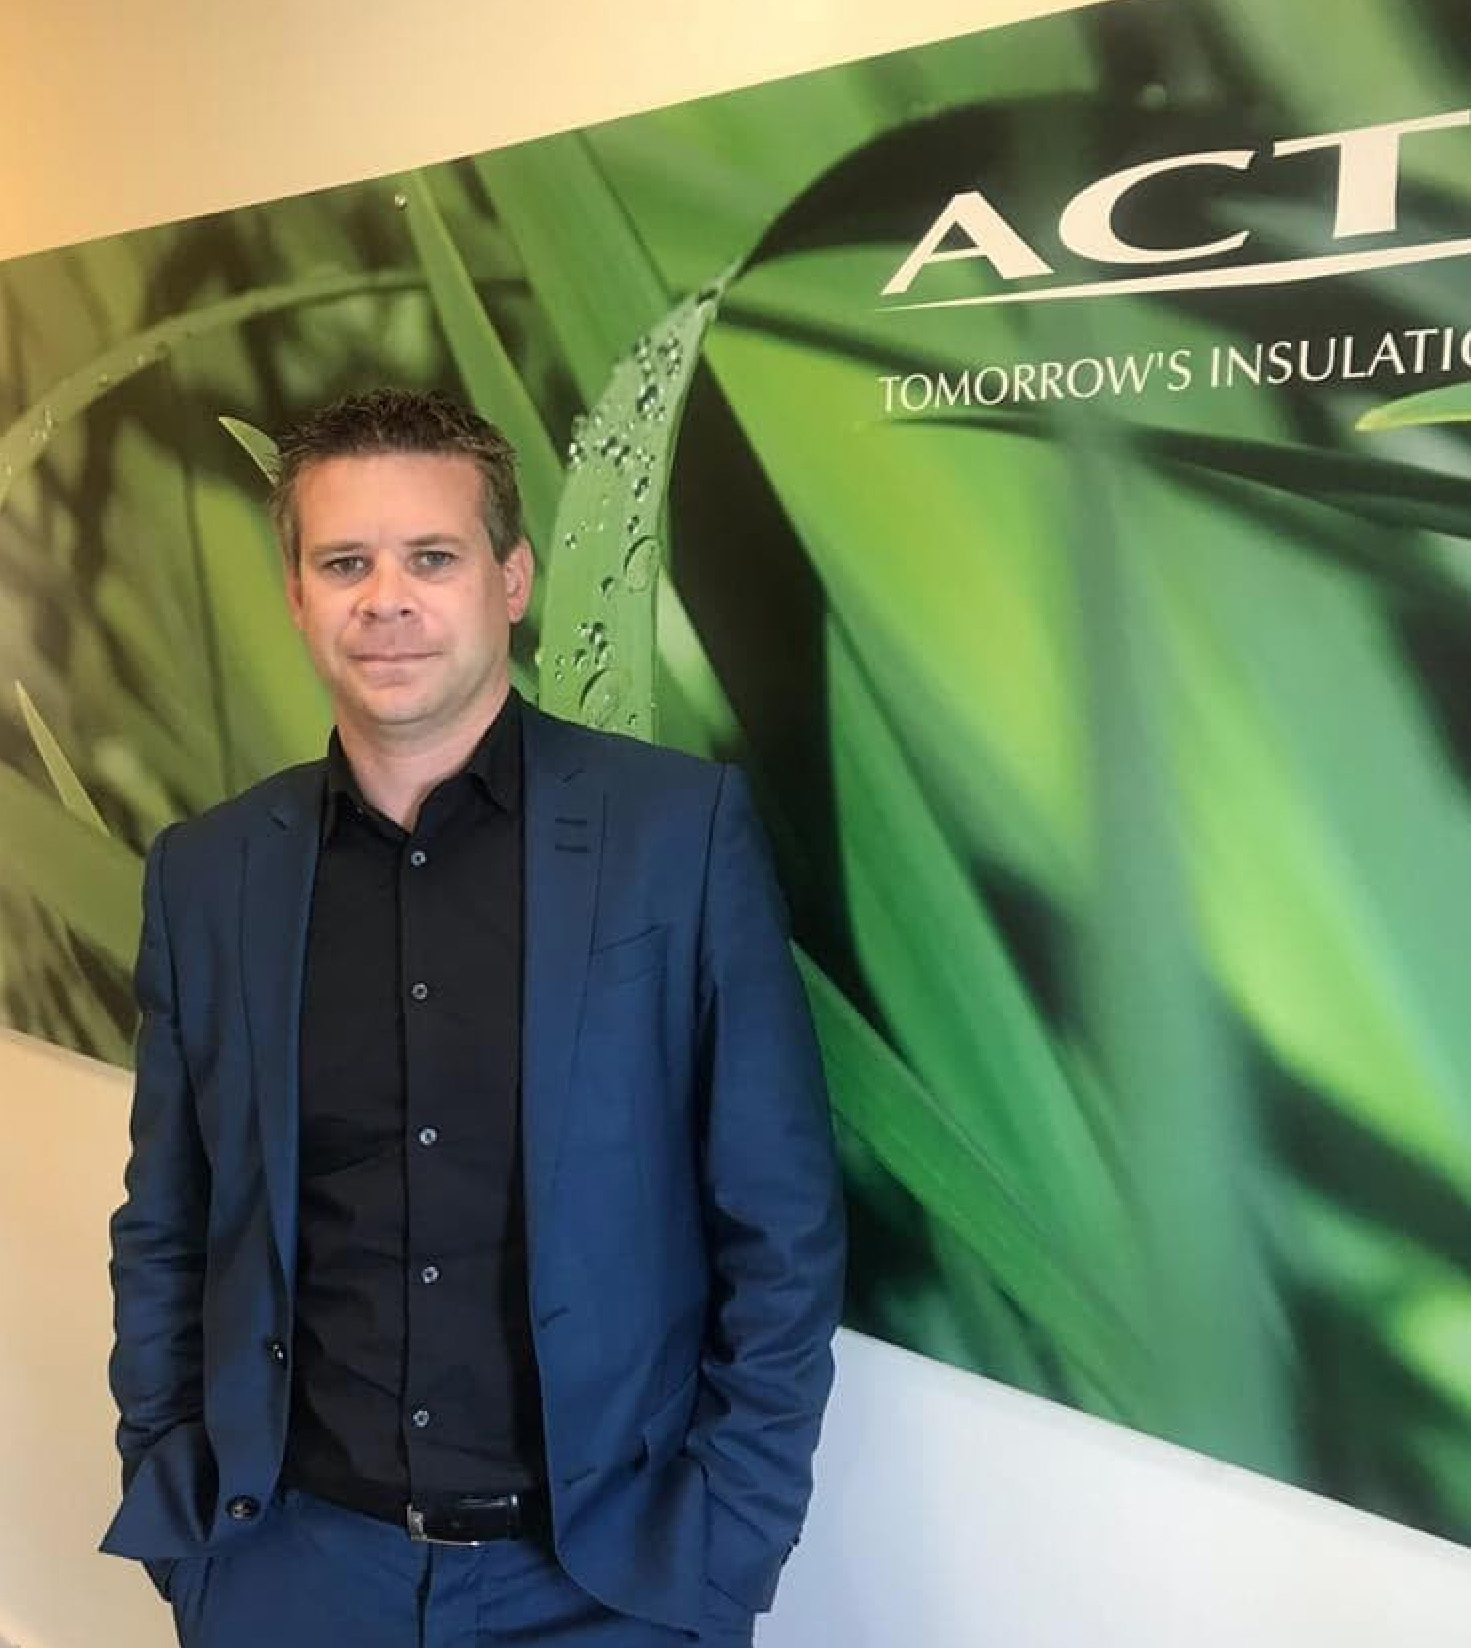 Think tank's construction skills gap report highlights need for more MMC, says Actis